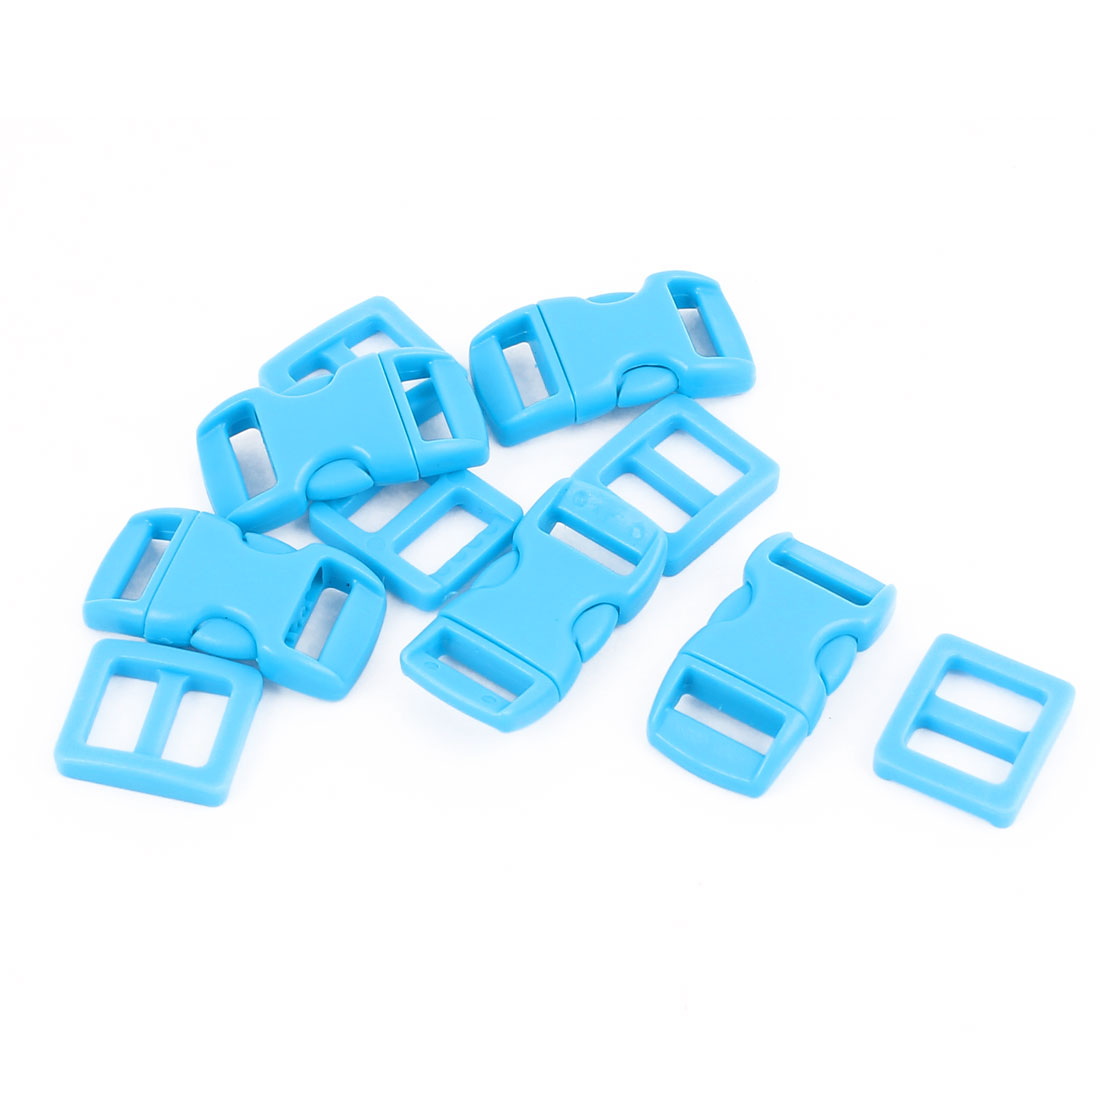 Blue Plastic Packbag Backpack Side Quick Release Buckles 10-11mm Webbing Strap Clasp 5pcs